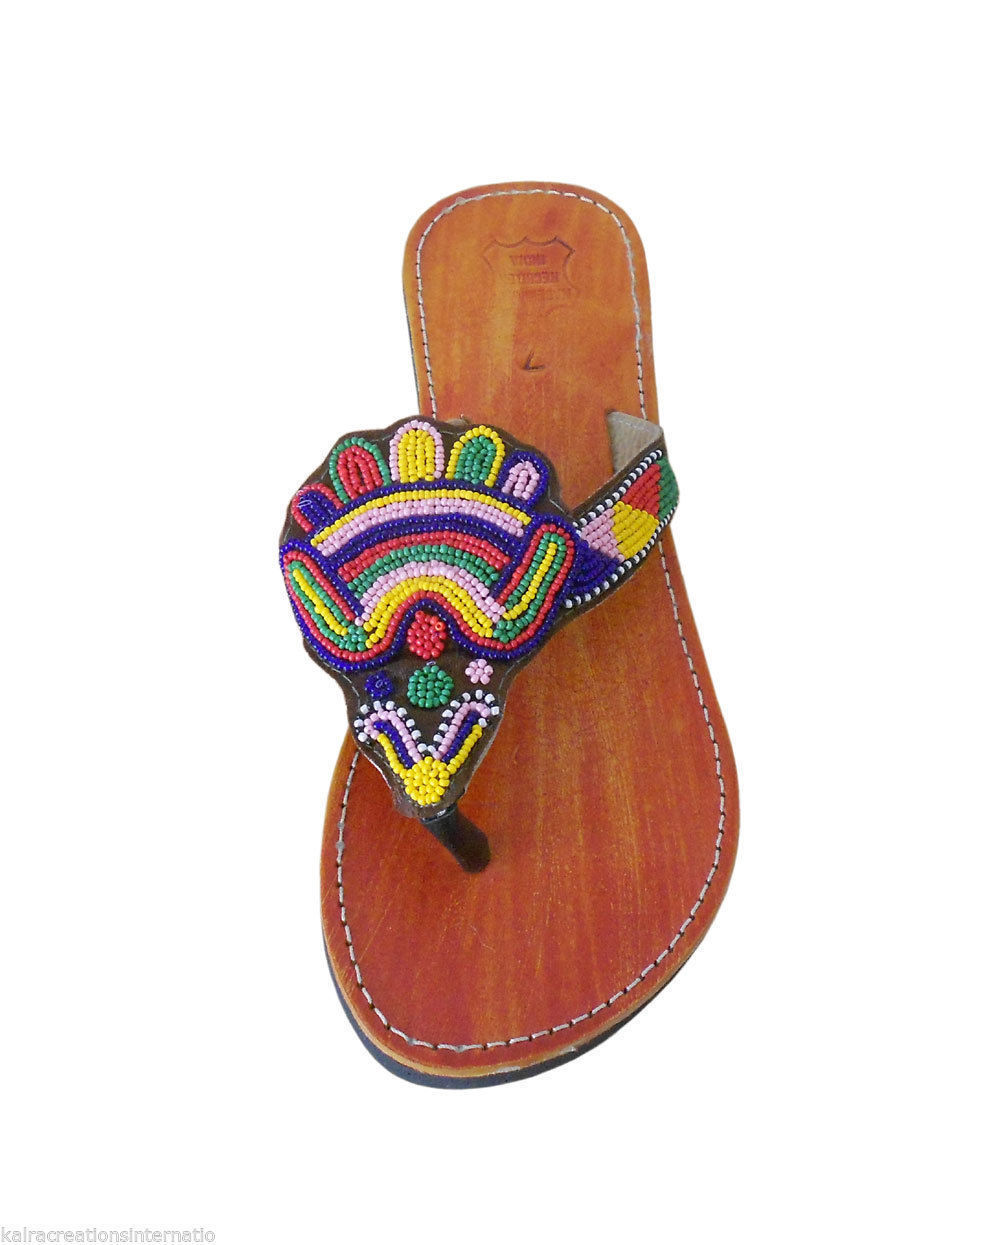 Primary image for Women Slippers Indian Handmade Leather Designer Camel Flats Slip On US 8